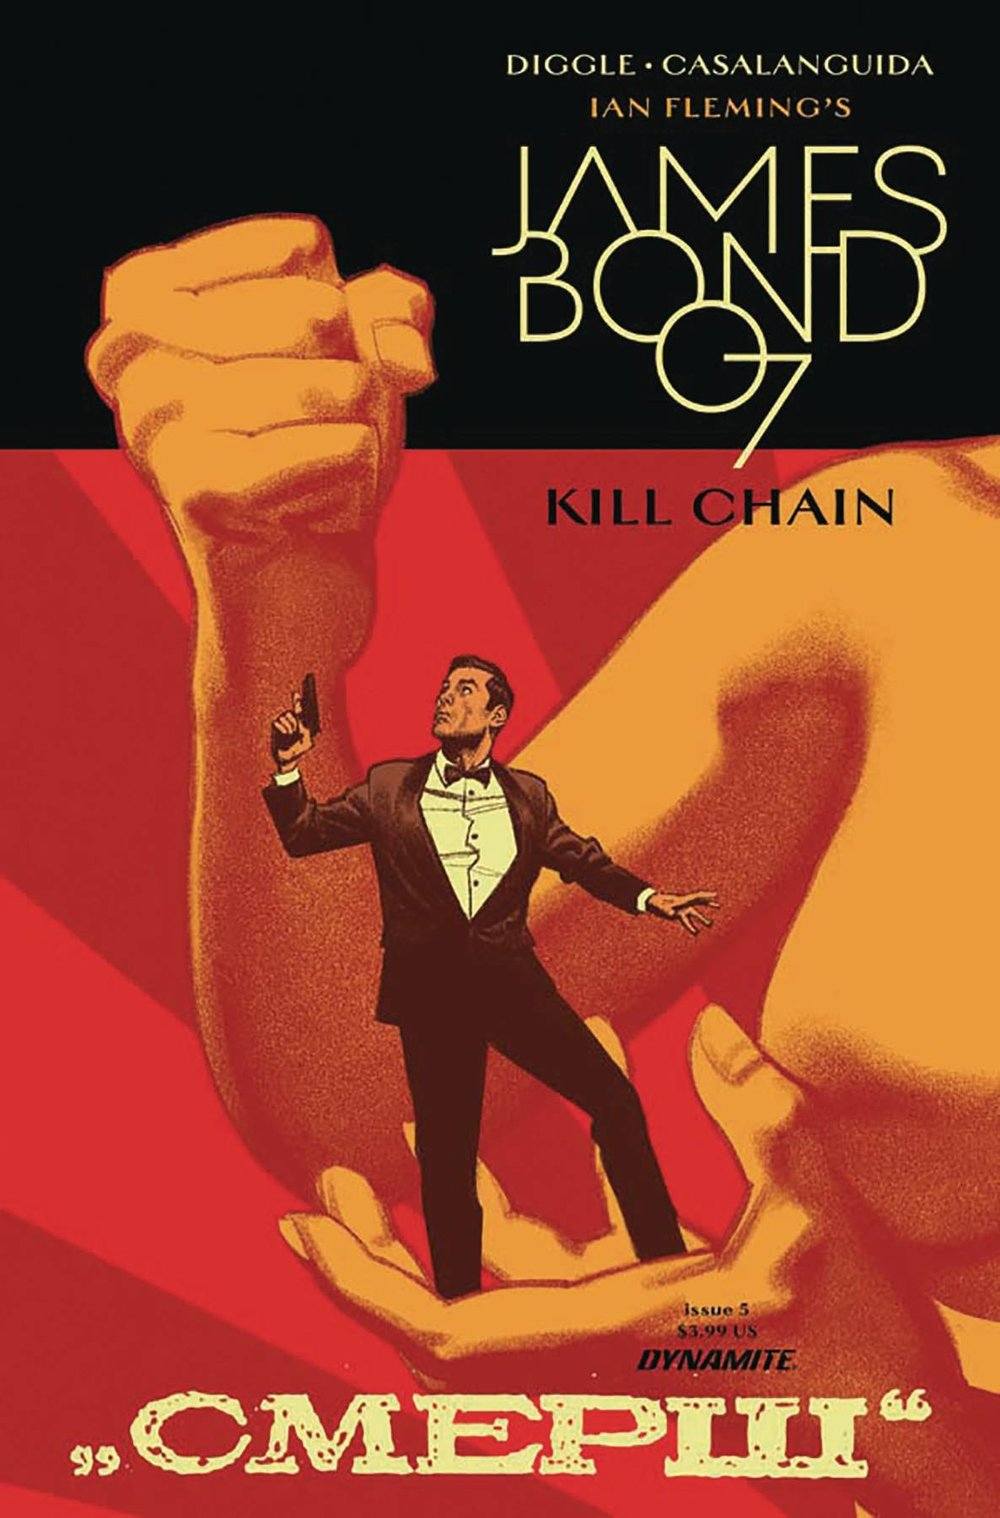 JAMES BOND KILL CHAIN 5 of 6 CVR A SMALLWOOD.jpg